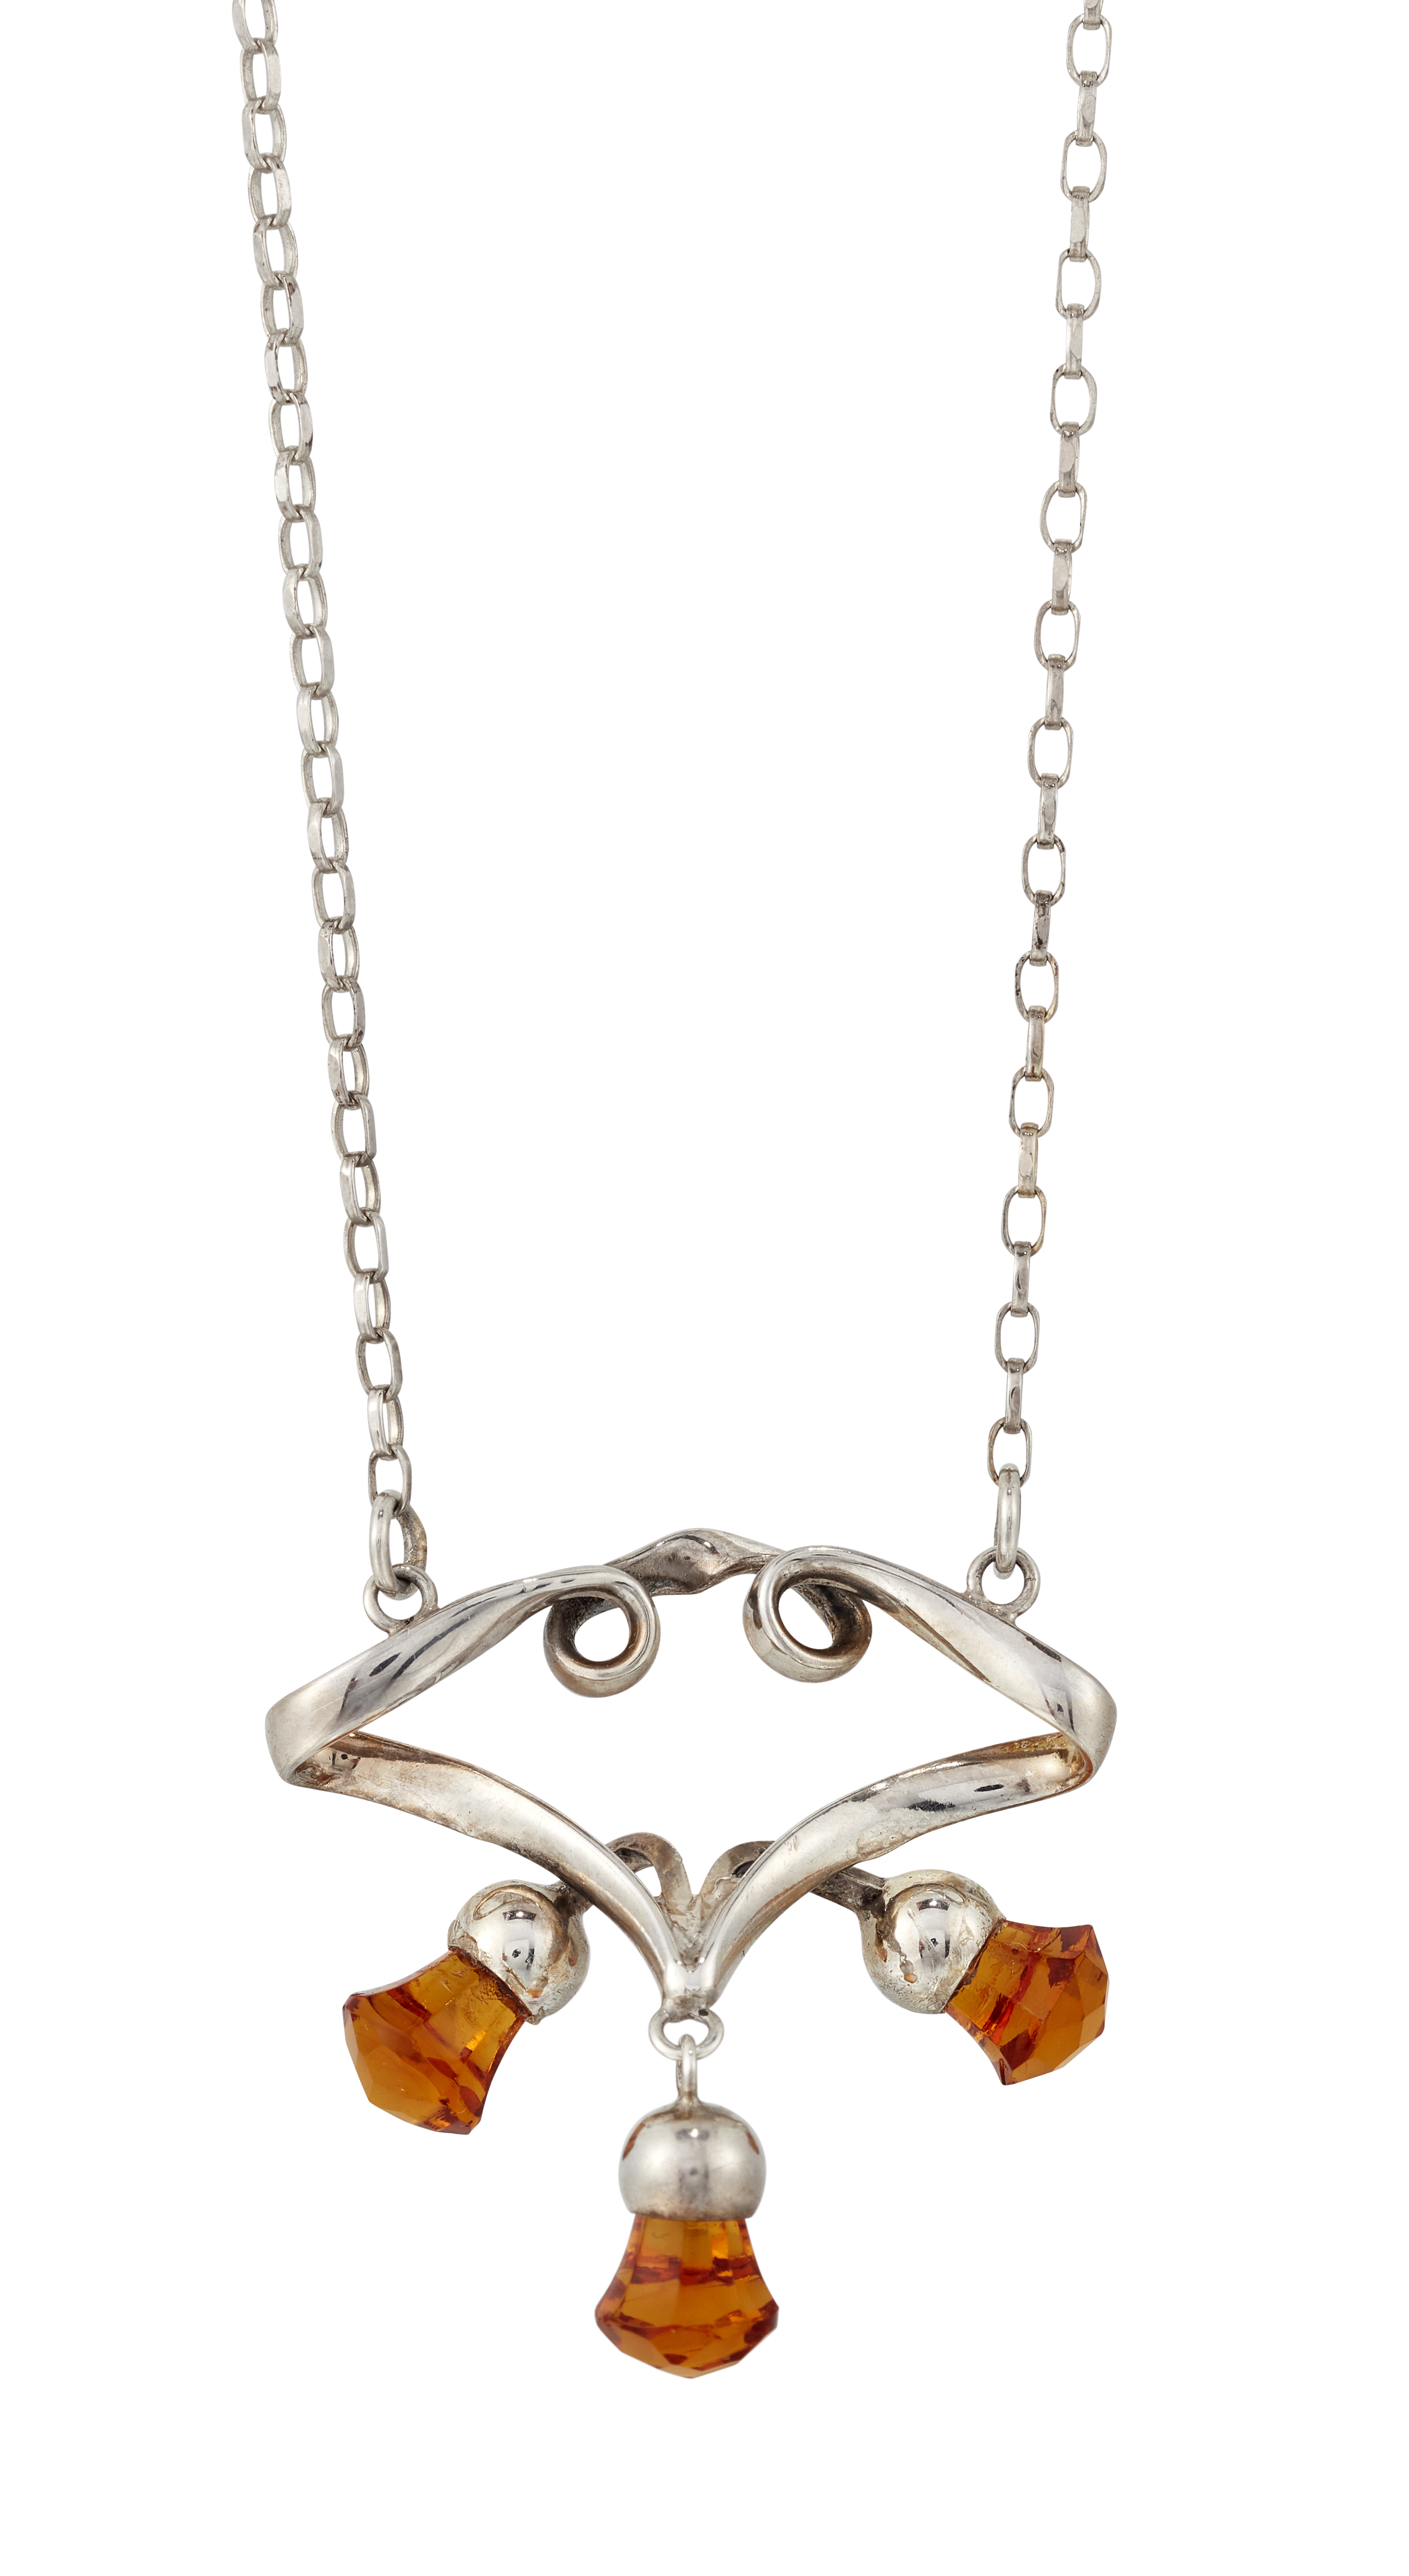 AN ART NOUVEAU SILVER AND PASTE PENDANT ON CHAIN, BY CHARLES HORNER